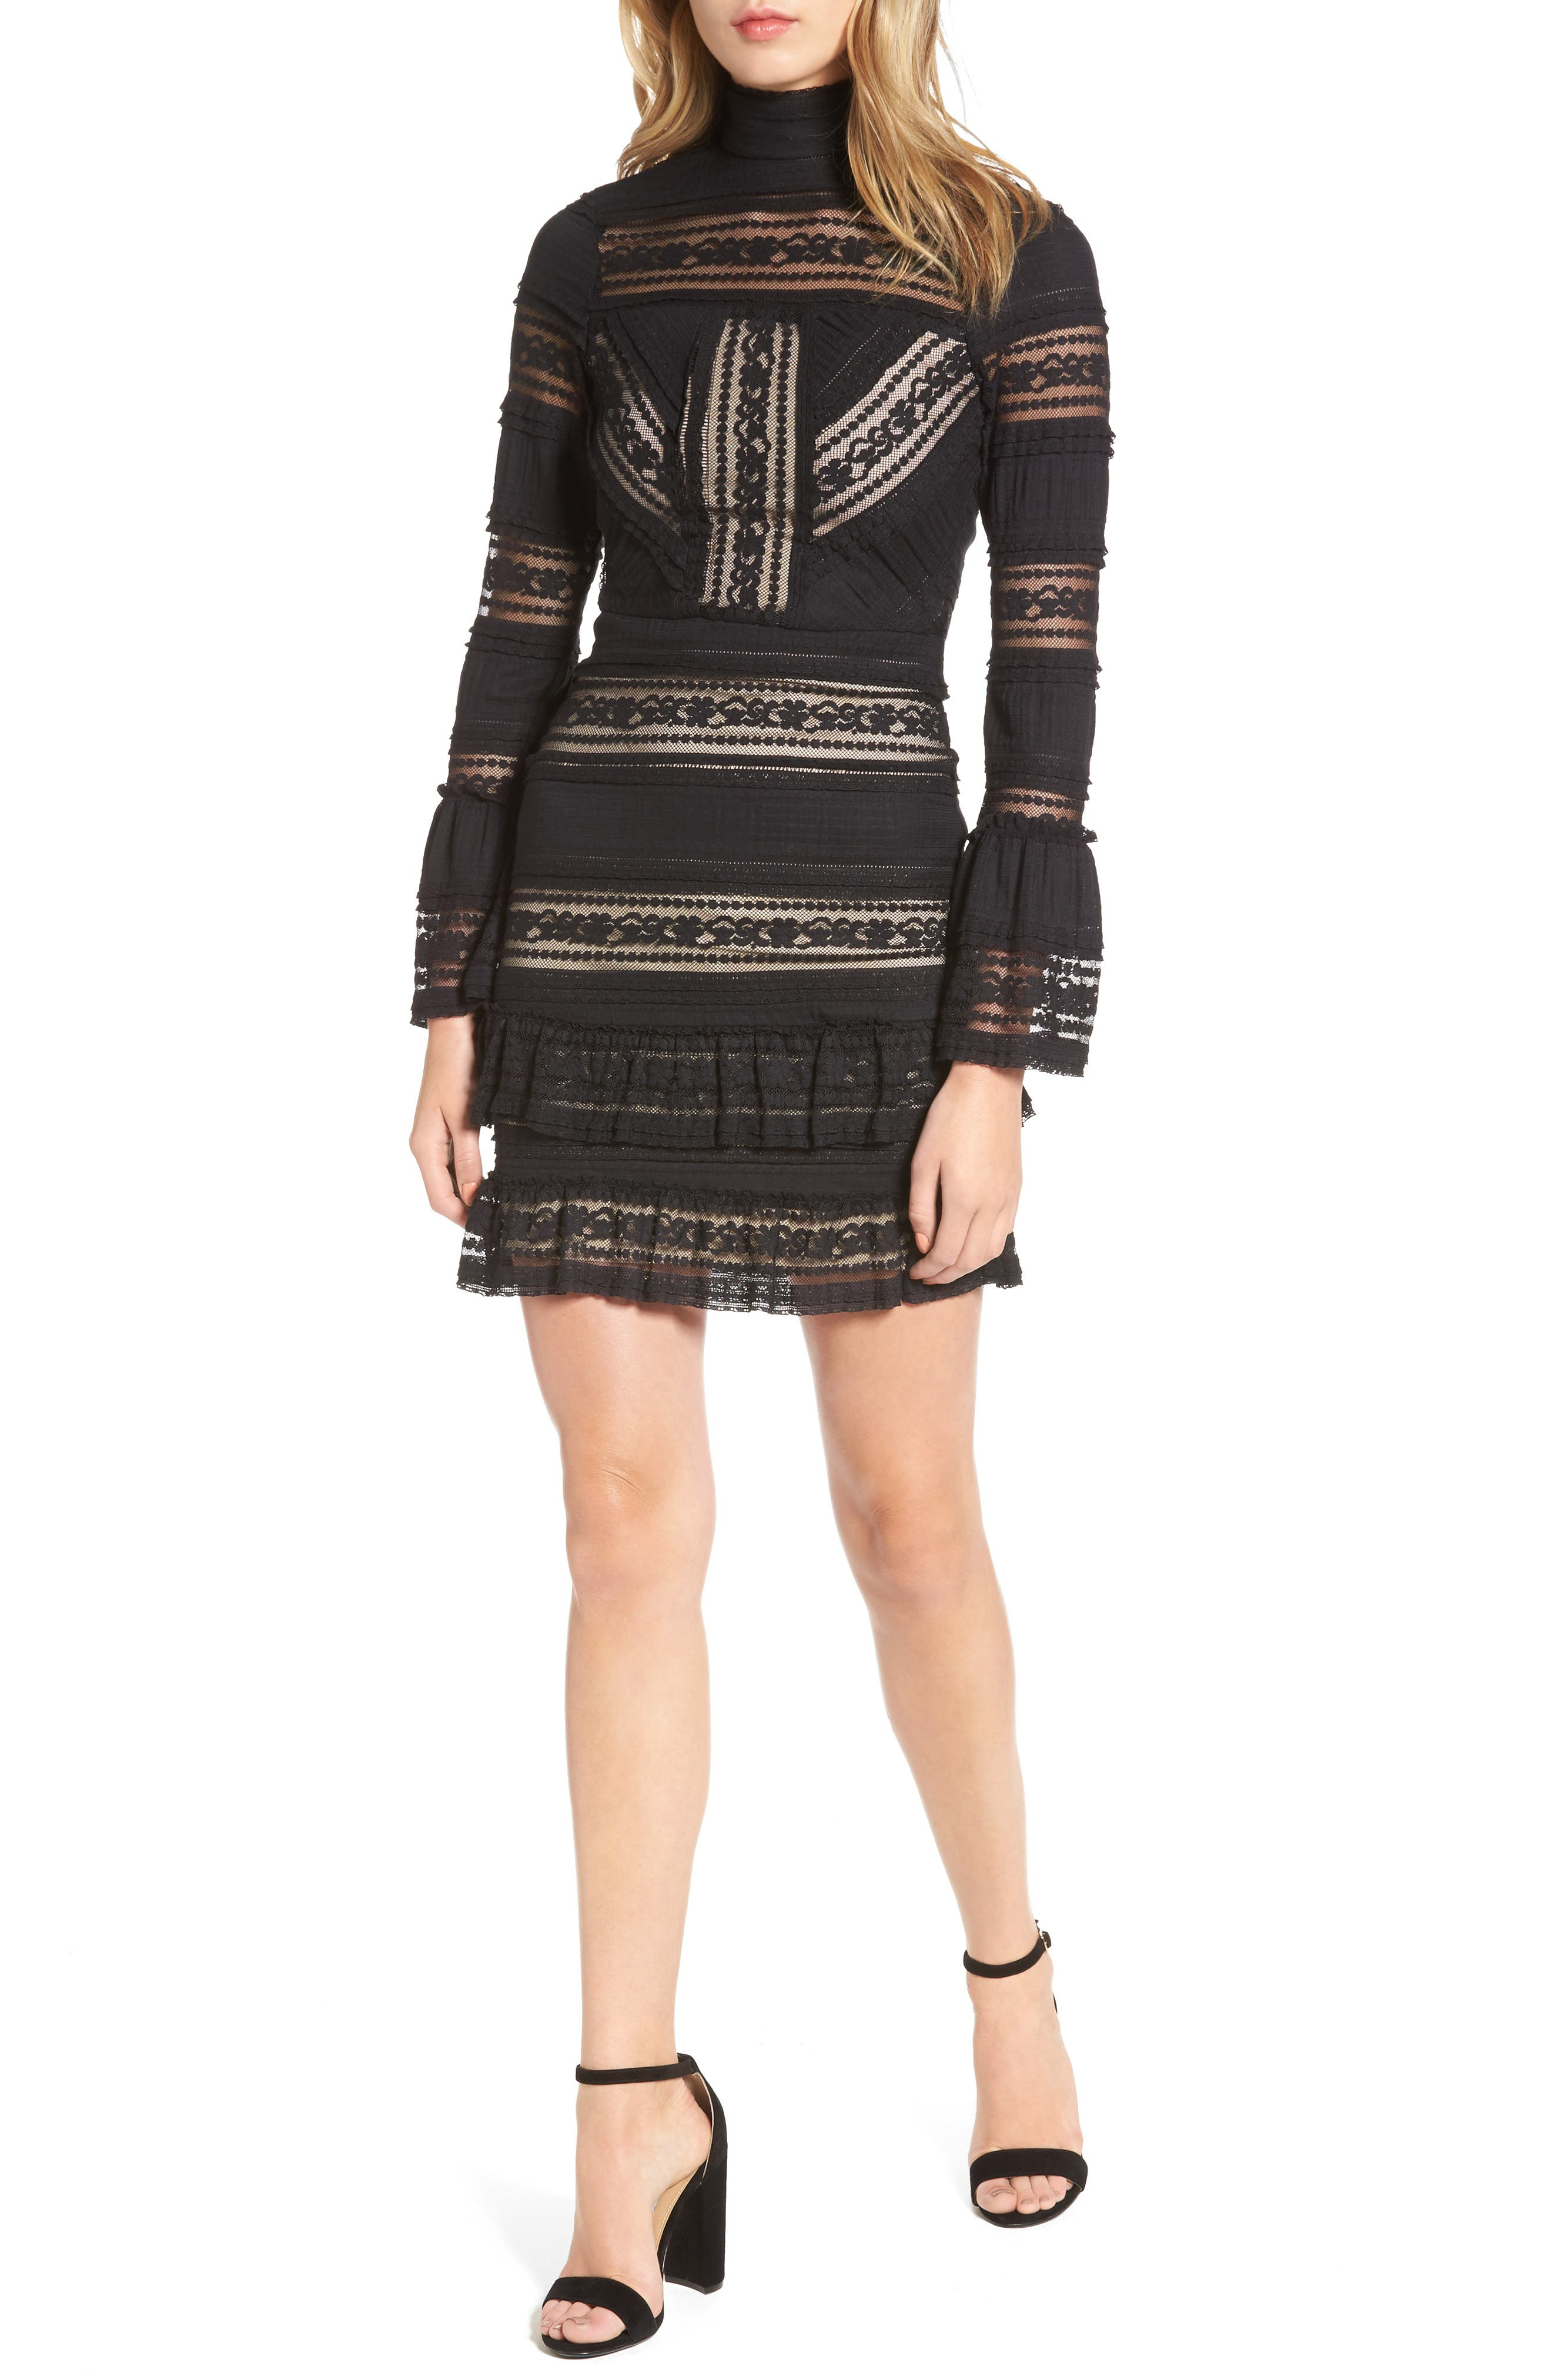 Parker Topanga Lace Sheath Dress